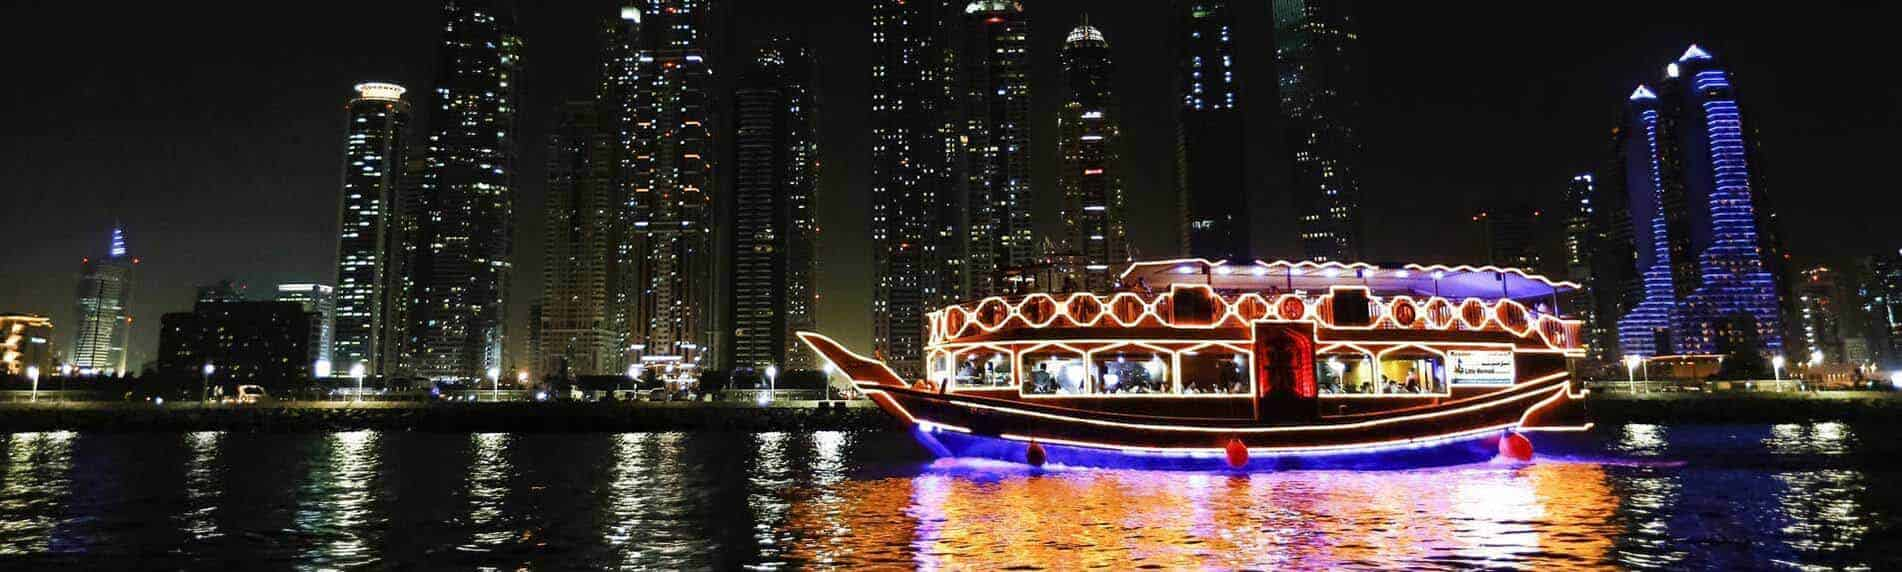 2 Nights New Year Celebration in Dubai with Marina Cruise